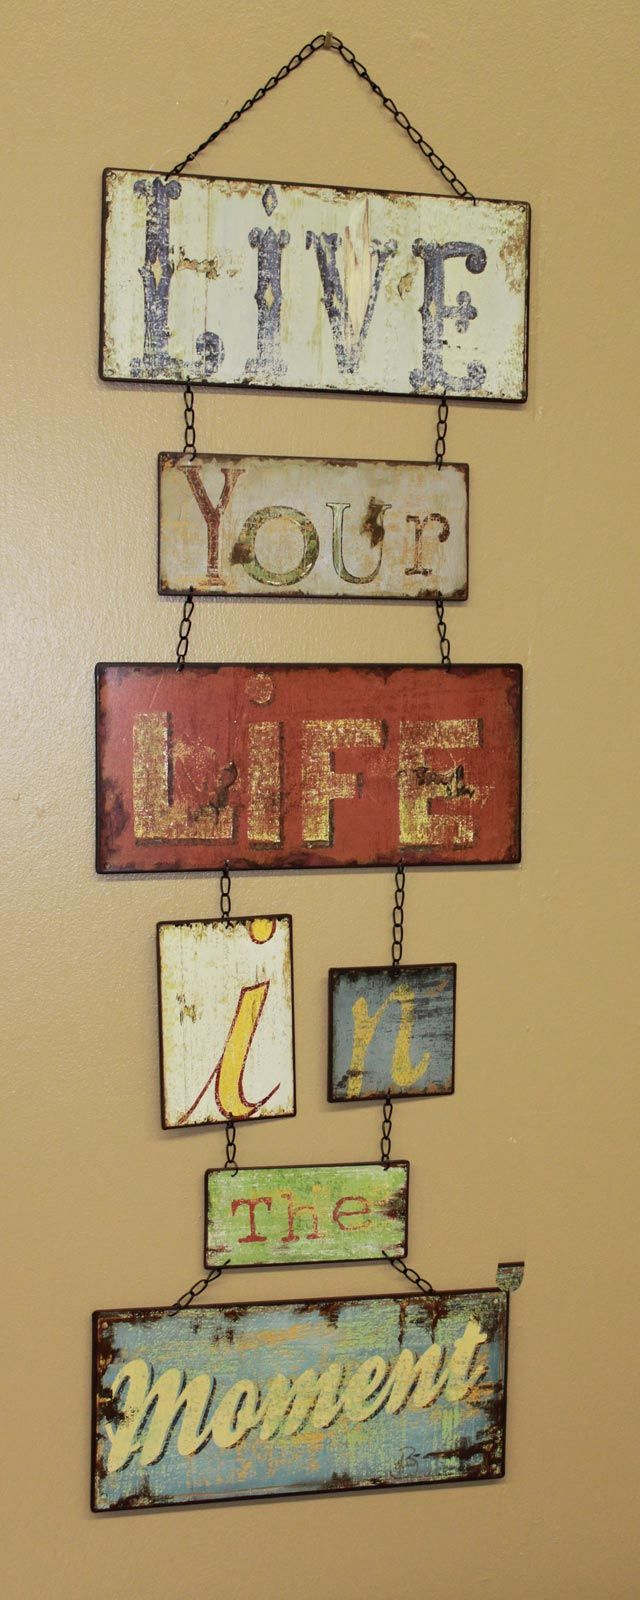 "Metal Sign Wall Decor Interesting Hanging Wall Art ""live Your Life In The Moment"" Metal Sign Inspiration"